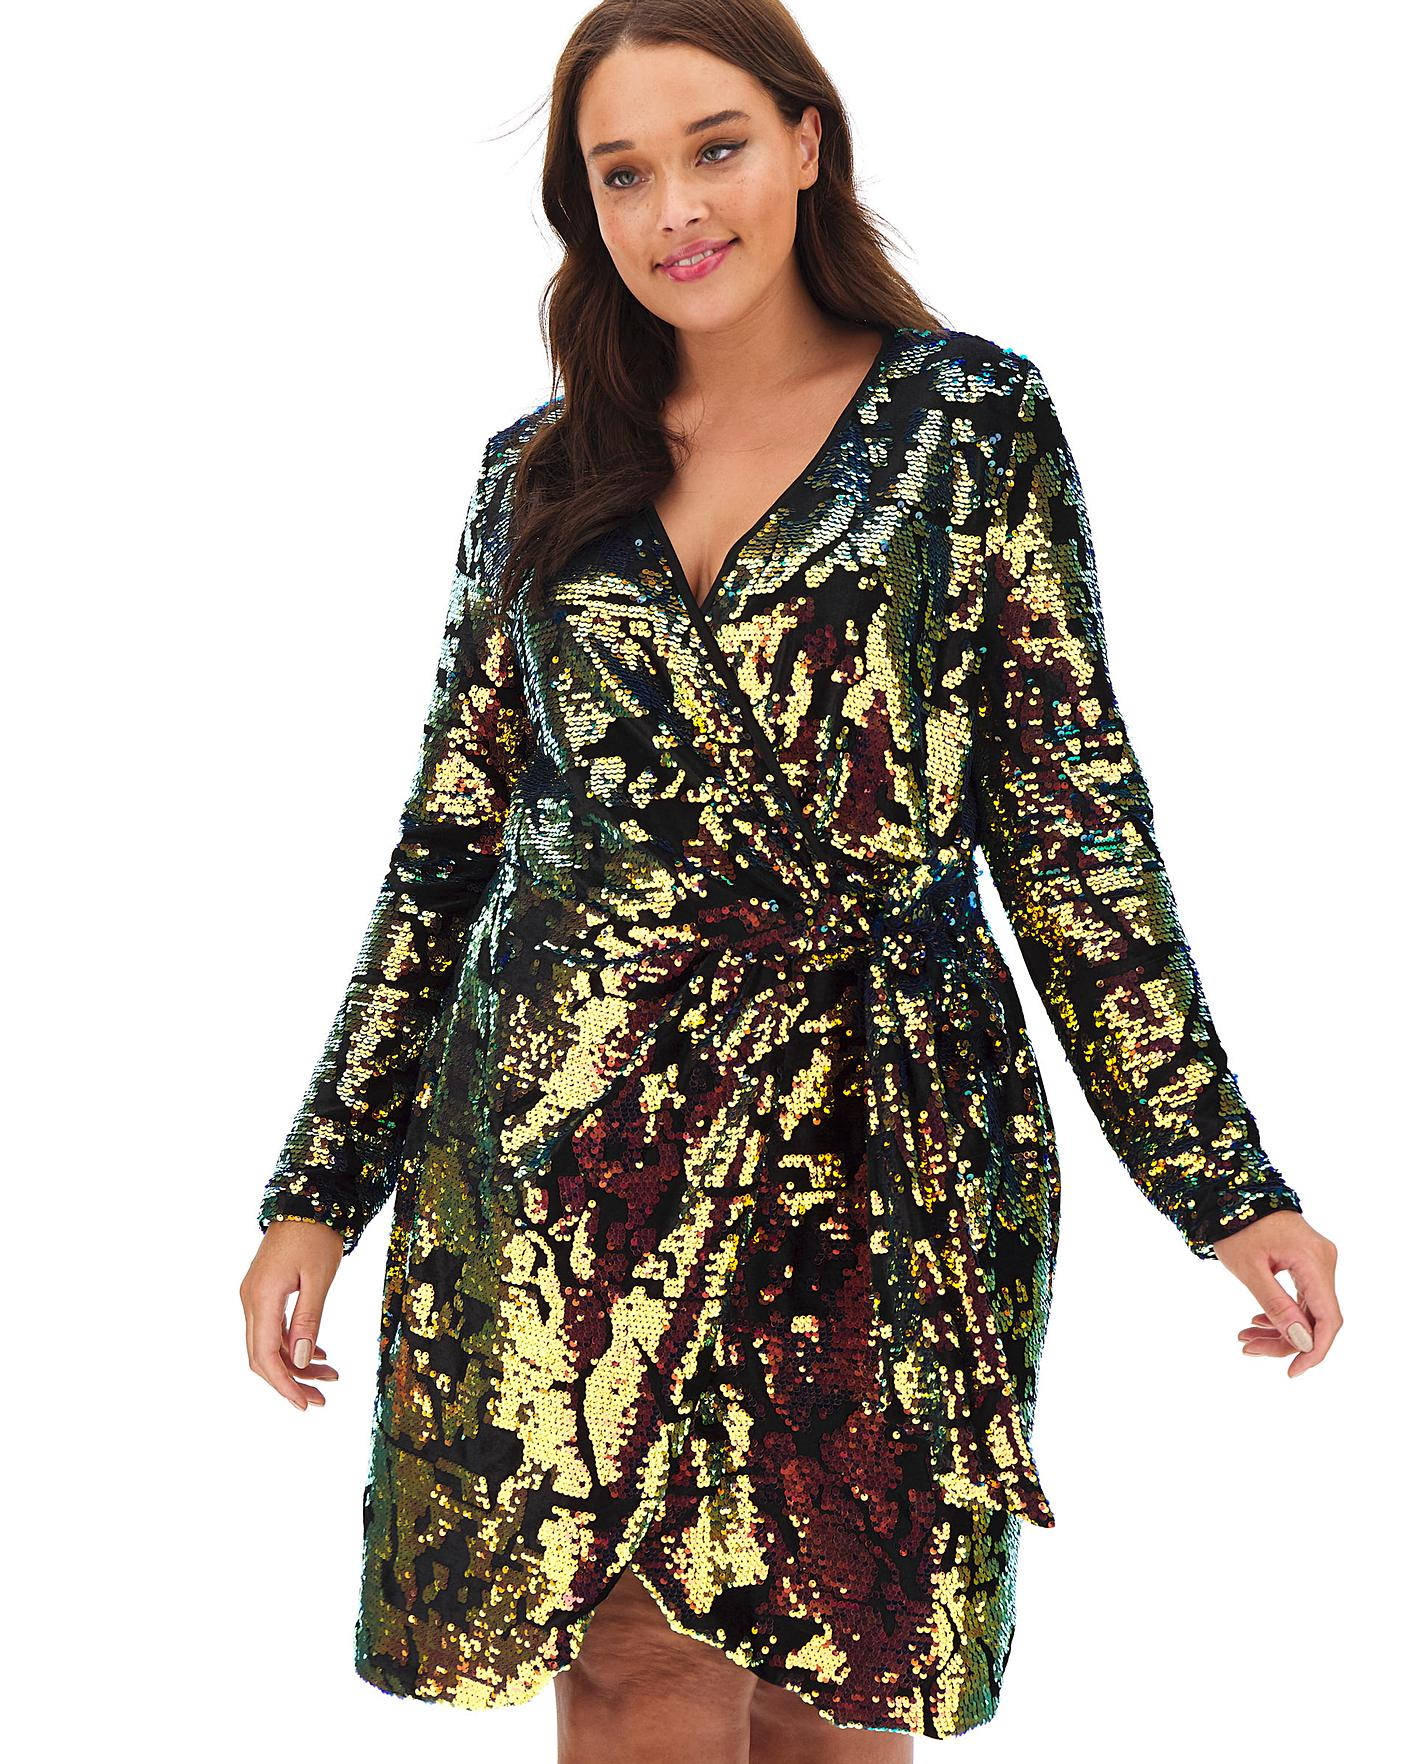 Joanna Hope Velour Wrap Sequin Dress - Simply be dresses